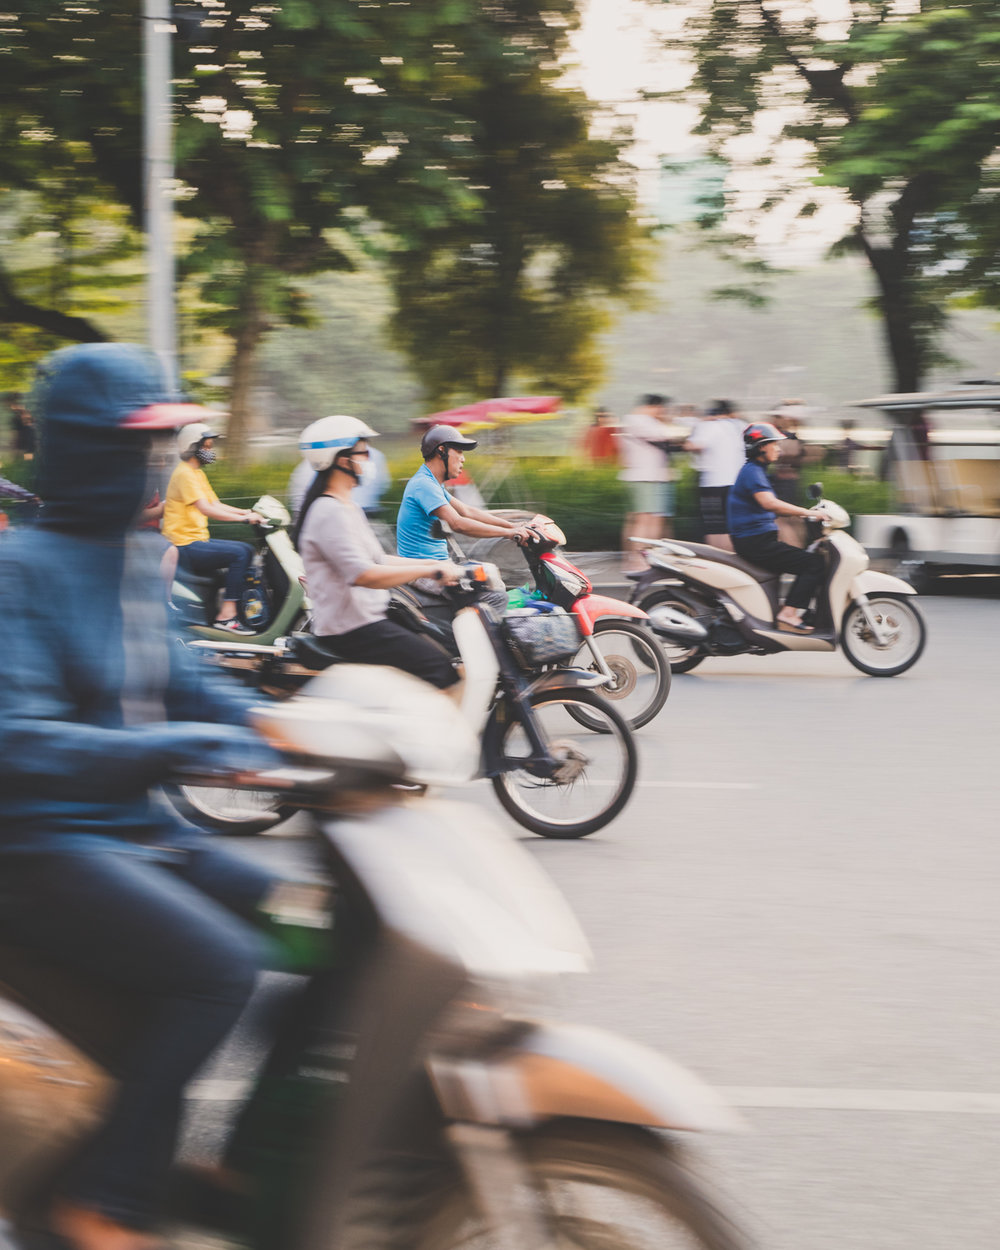 Just some of the millions of motorbikes in Vietnam